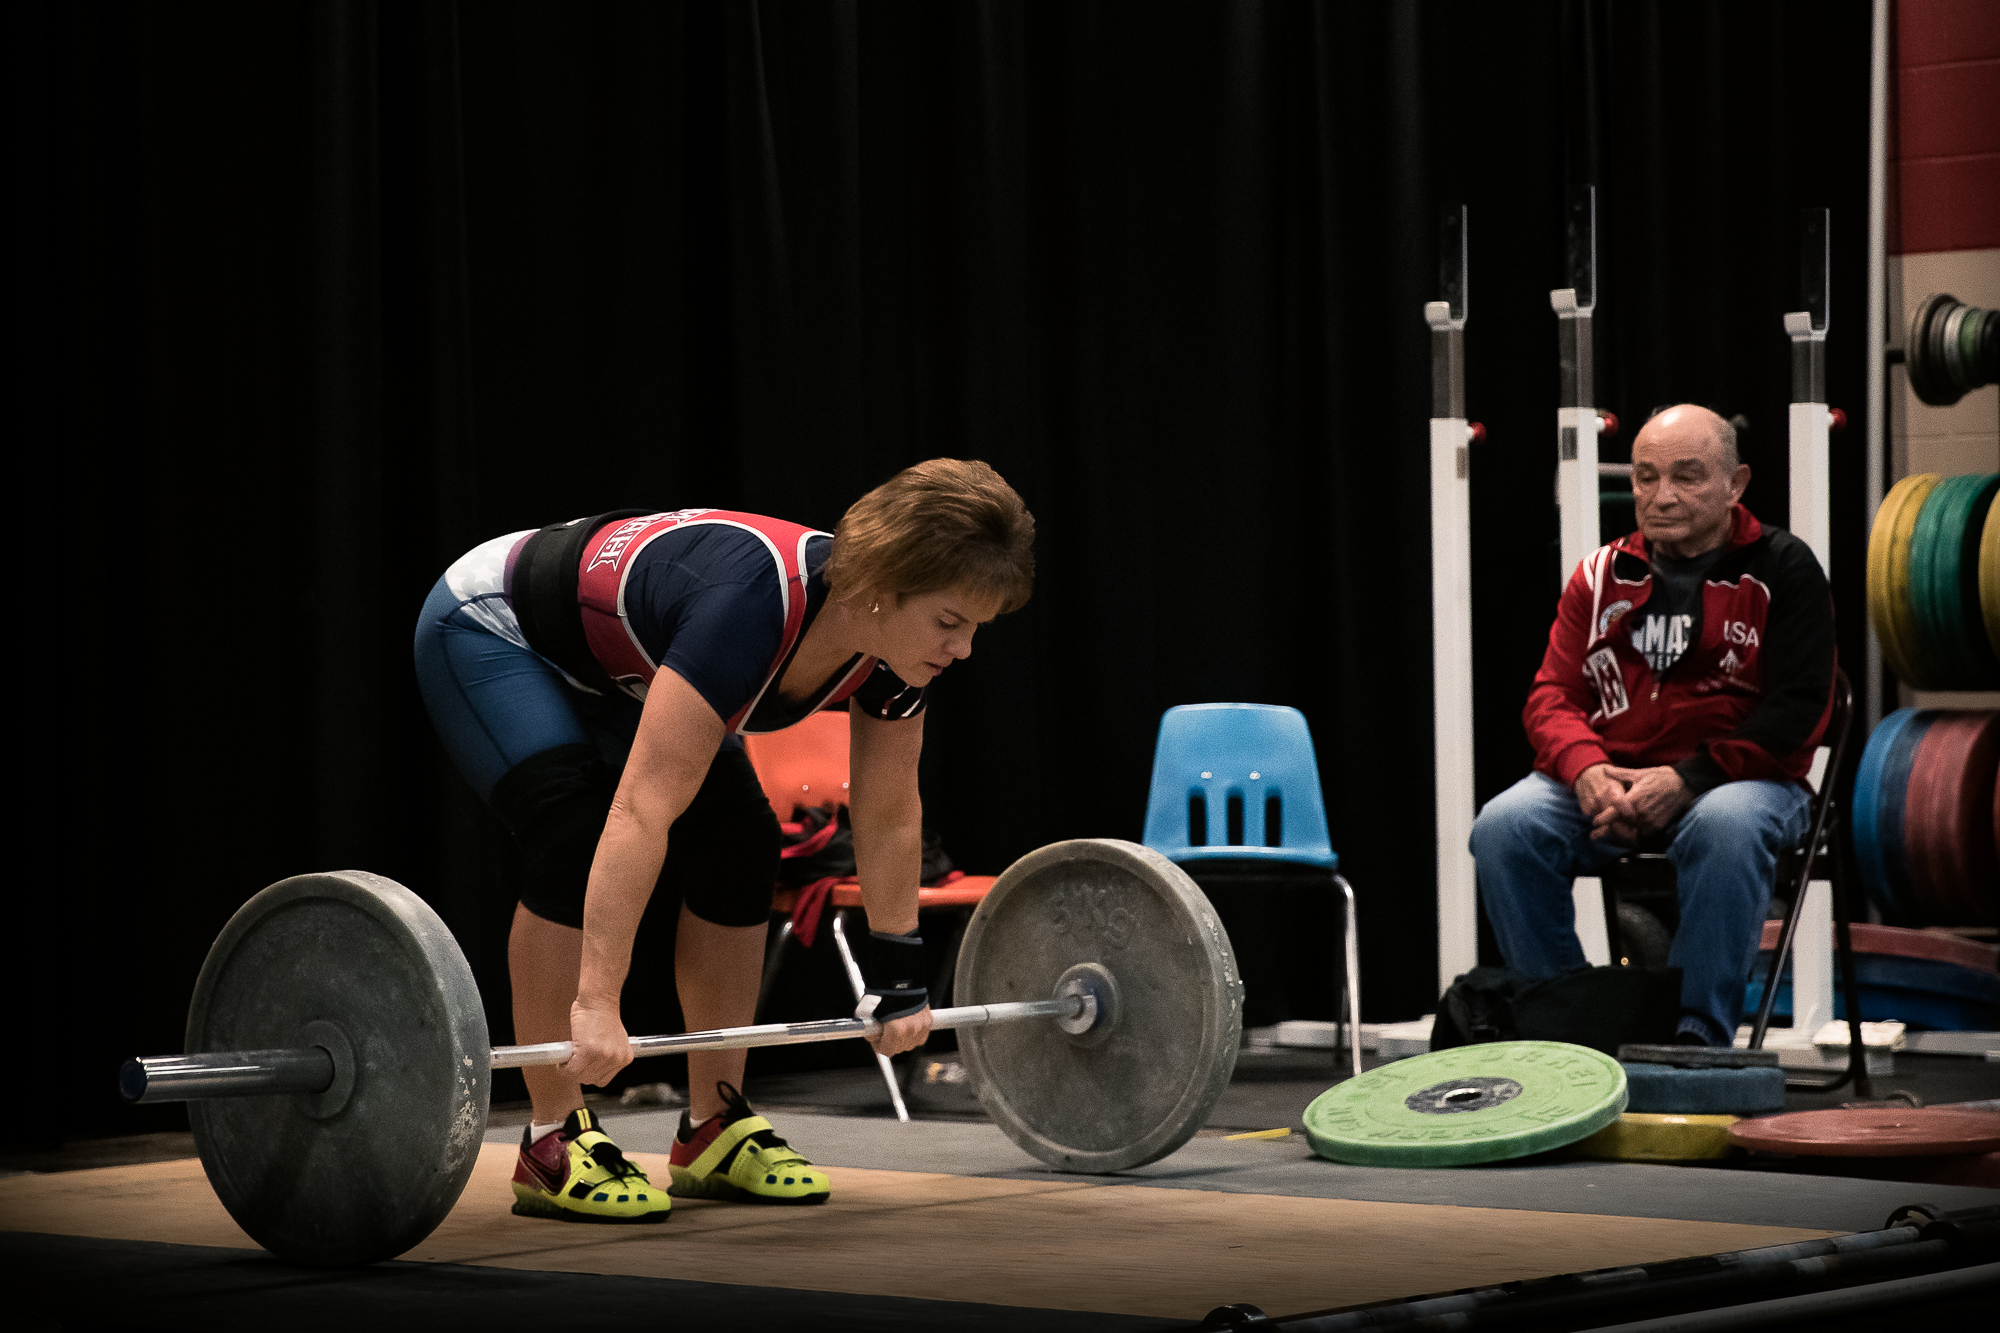 2017-american-masters-weightlifters-savannah-georgia-61.jpg